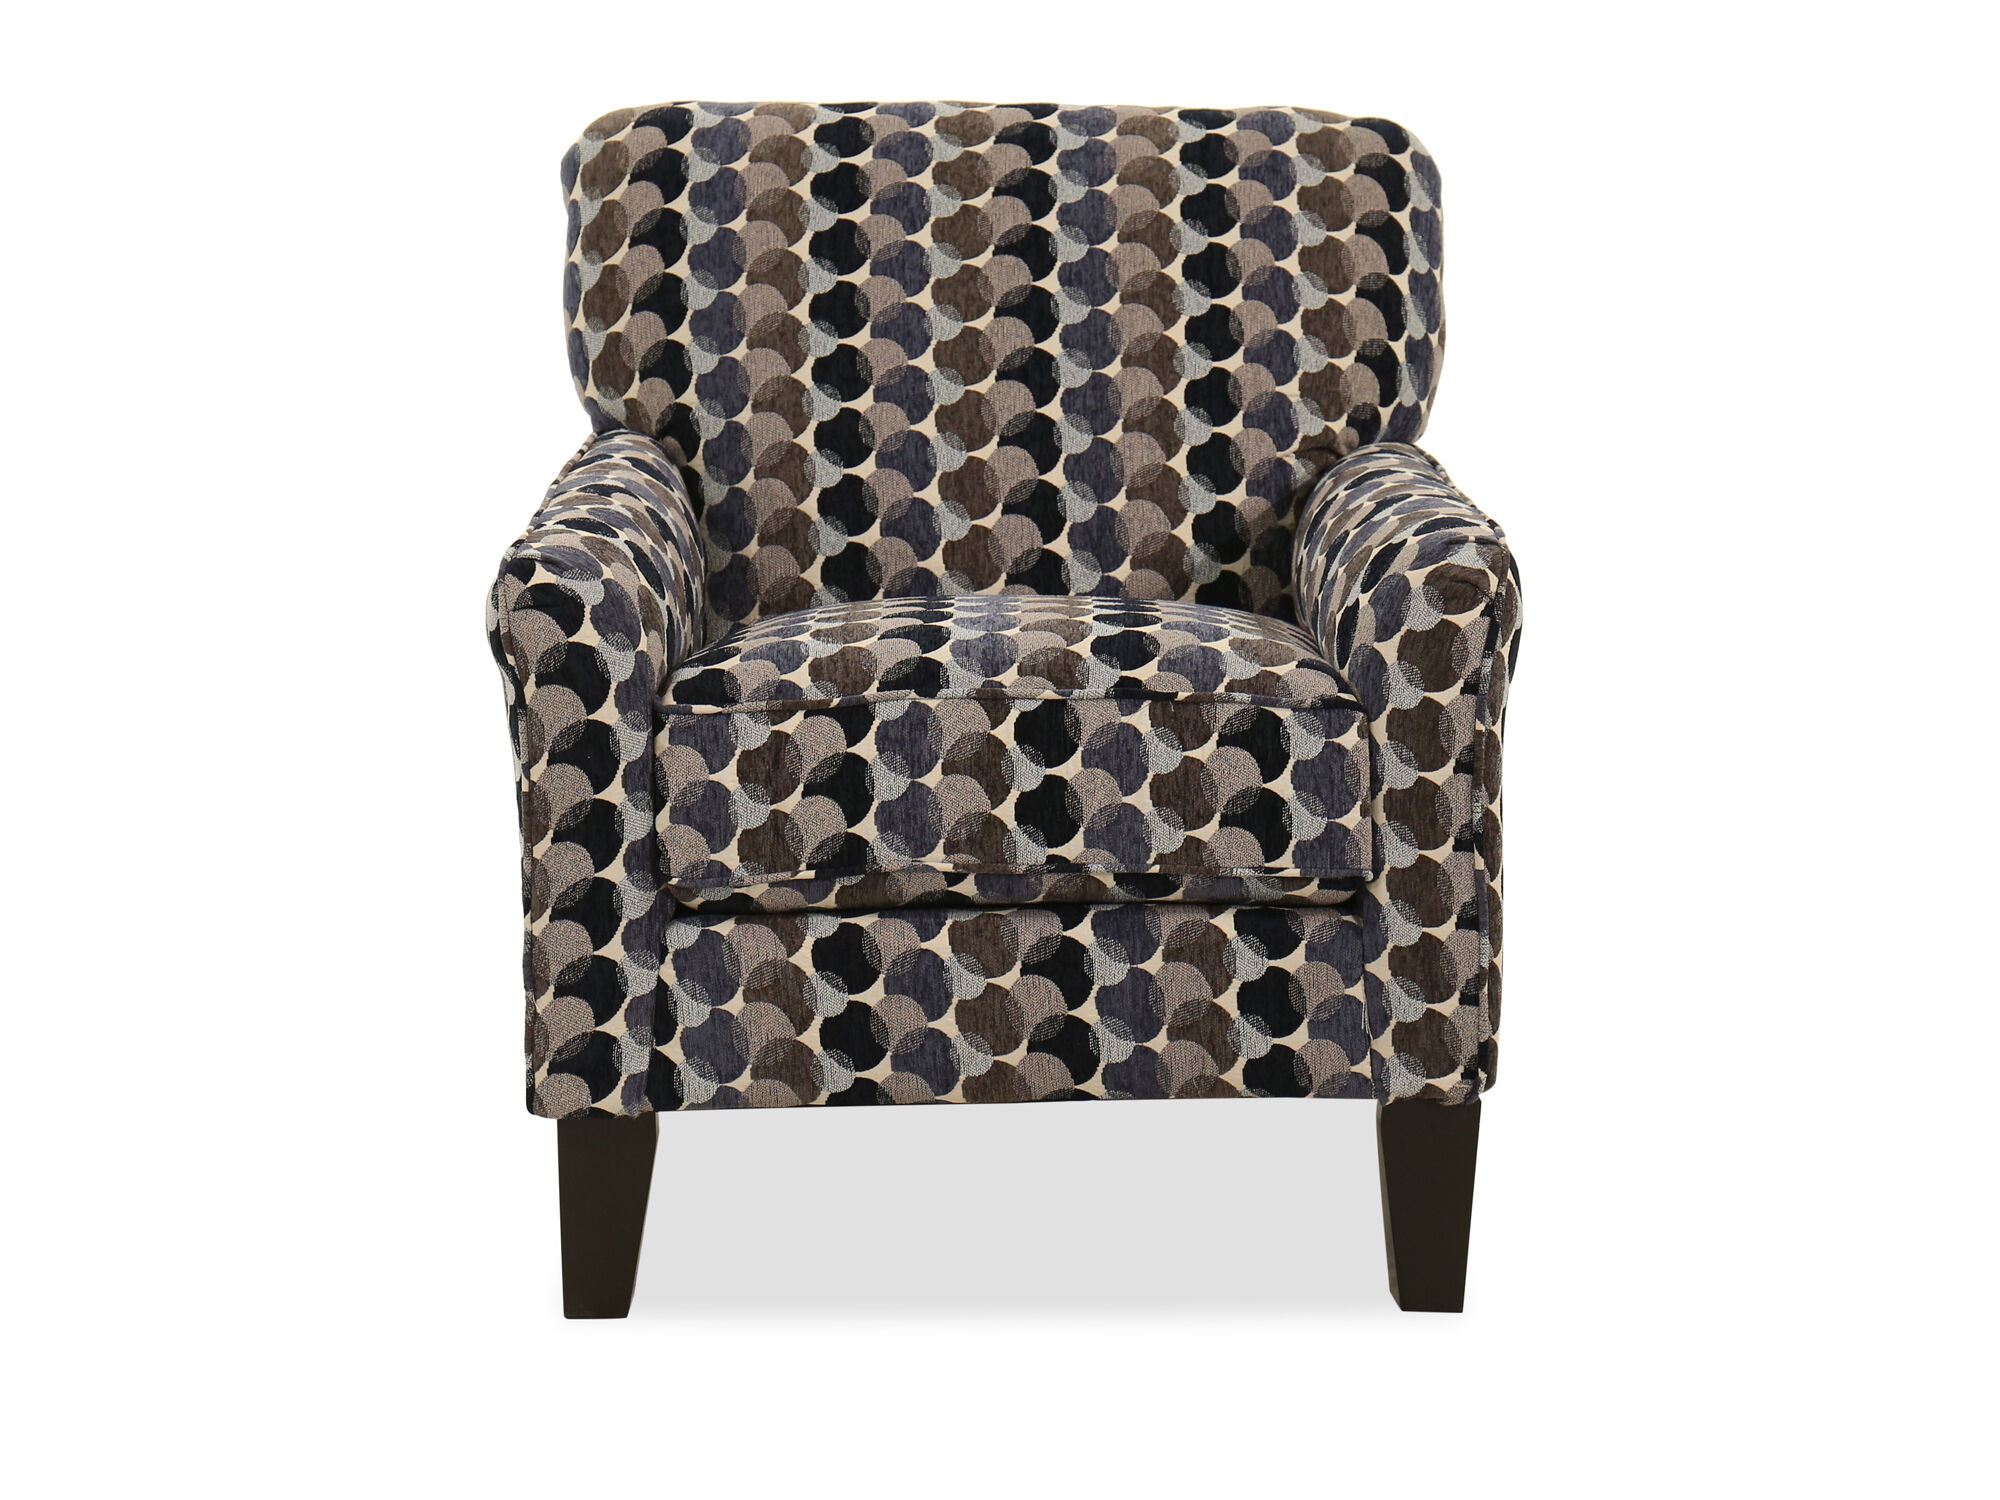 30 Bubble Patterned Transitional Accent Chair In Multi Mathis Brothers Furniture